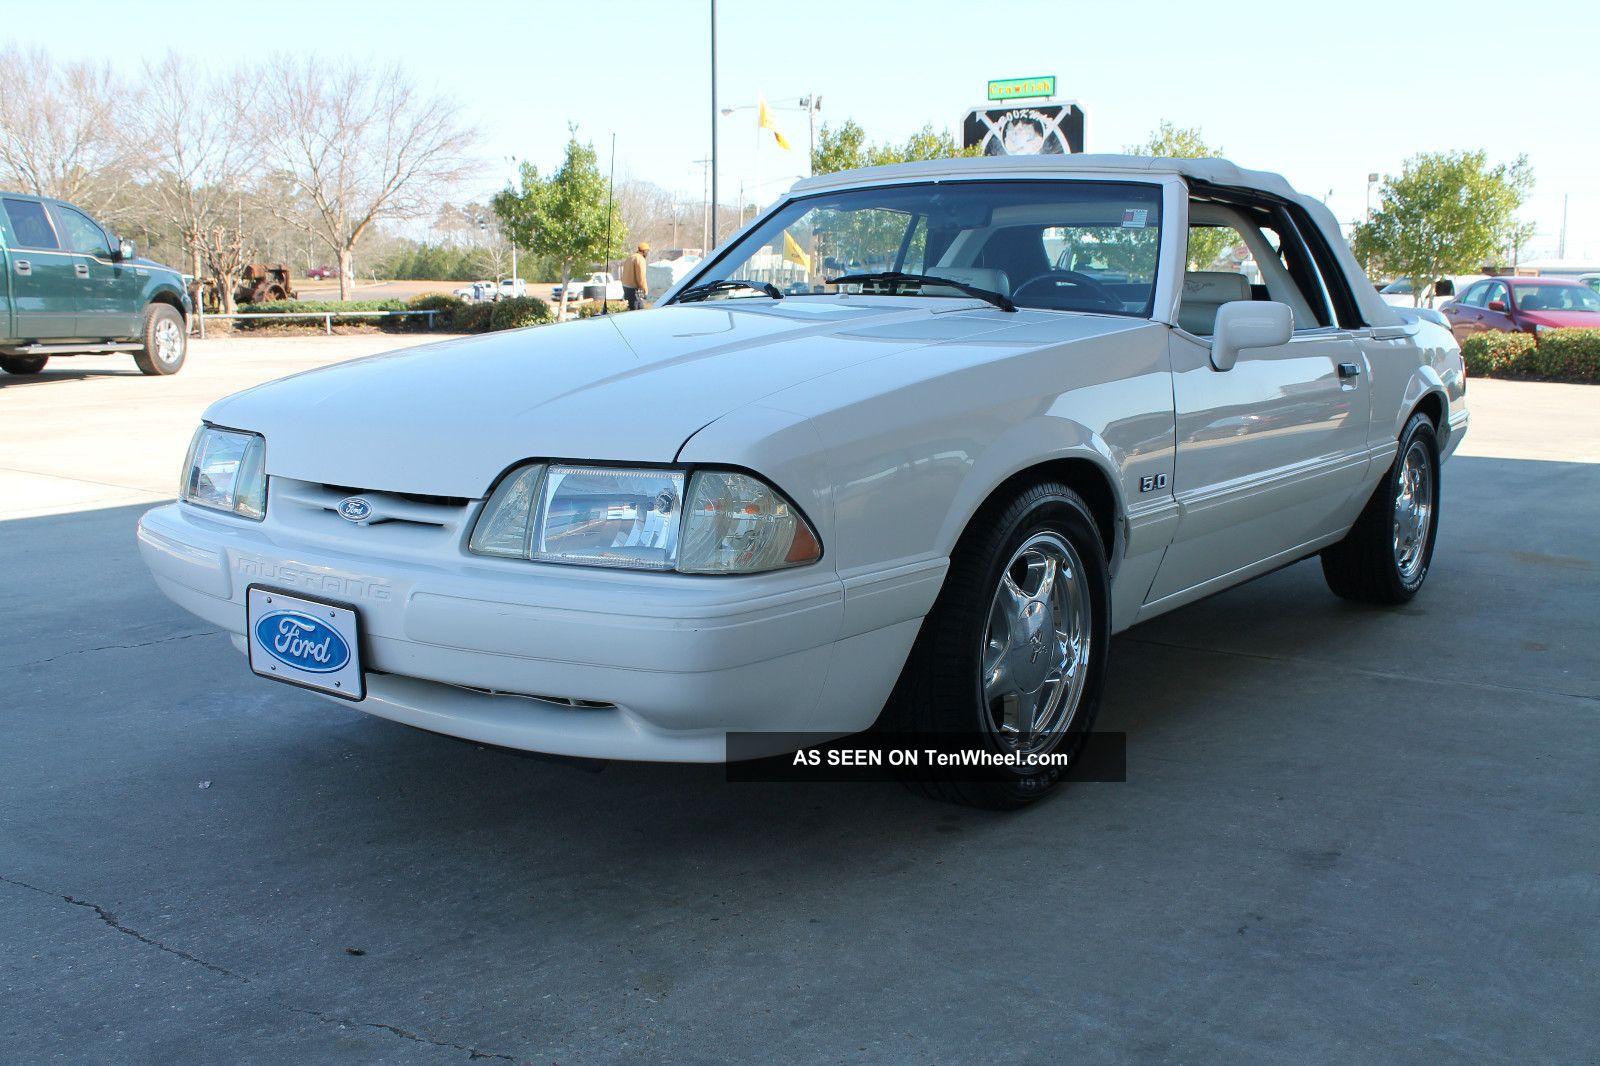 Ford Mustang Lx Convertible Door L Triple White Of Lgw